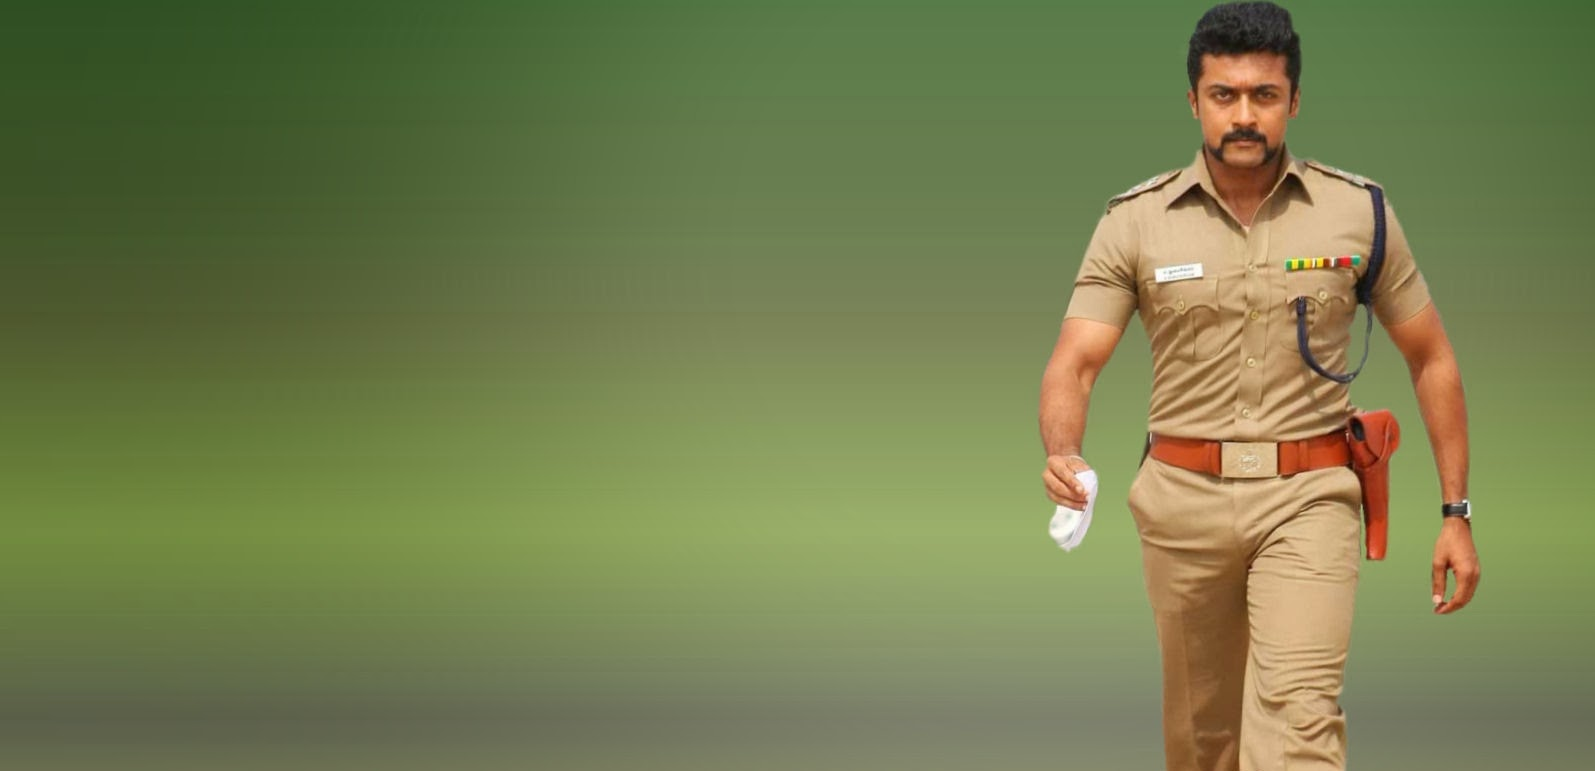 Suriya police role singam hd wallpaper